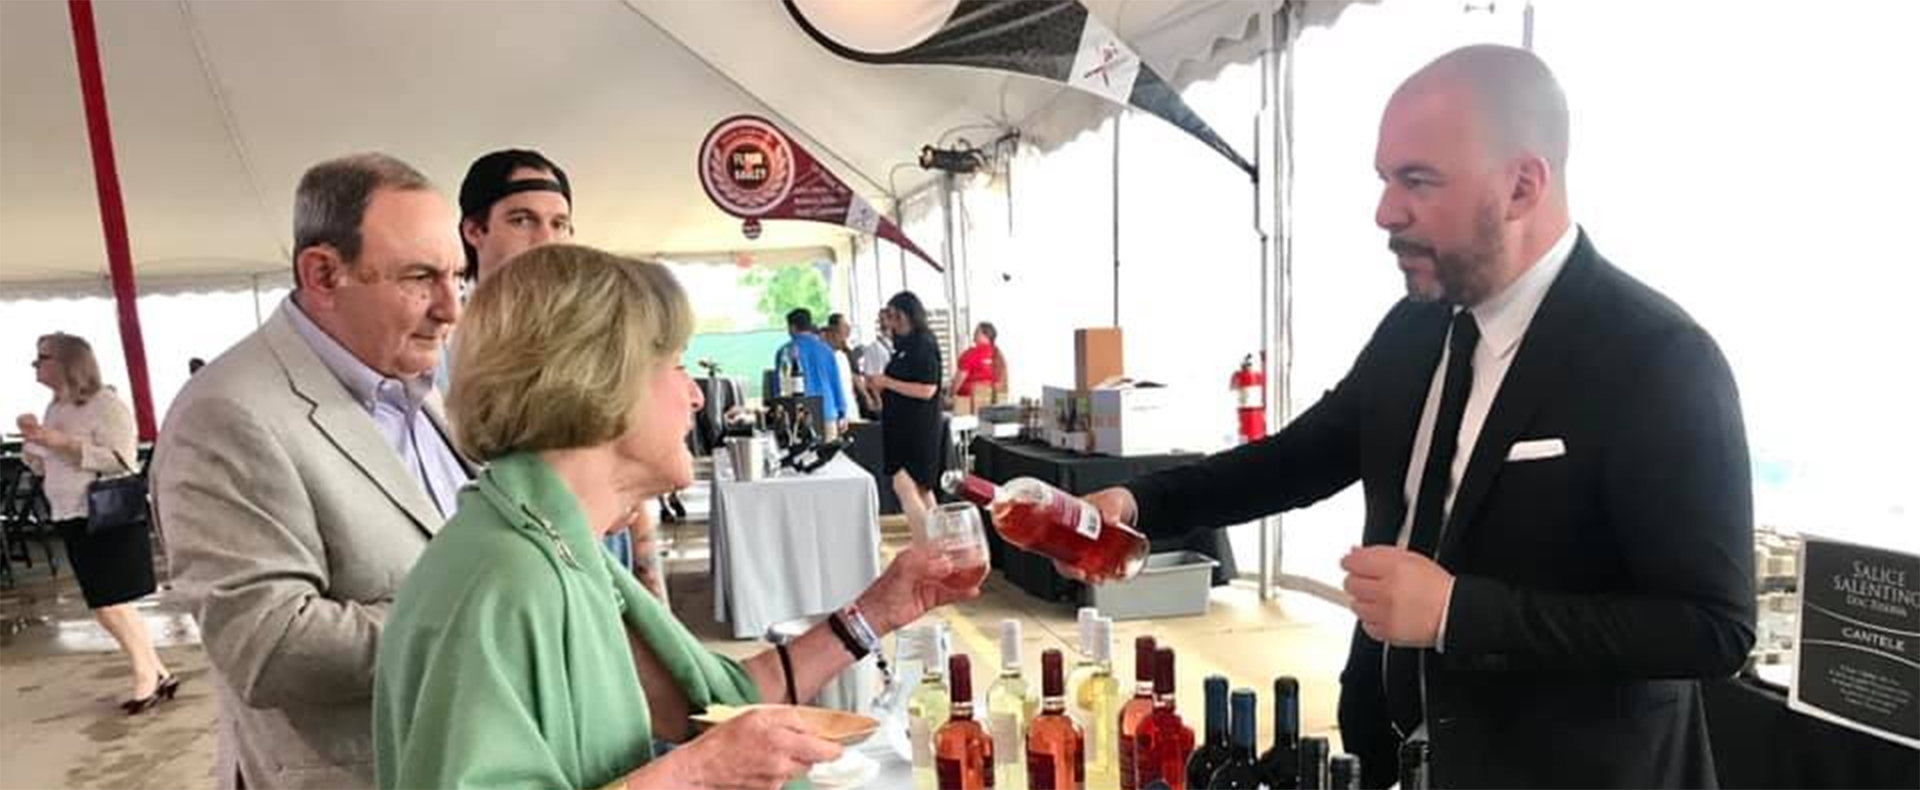 Pouring wine for a good cause in Cleveland, OH